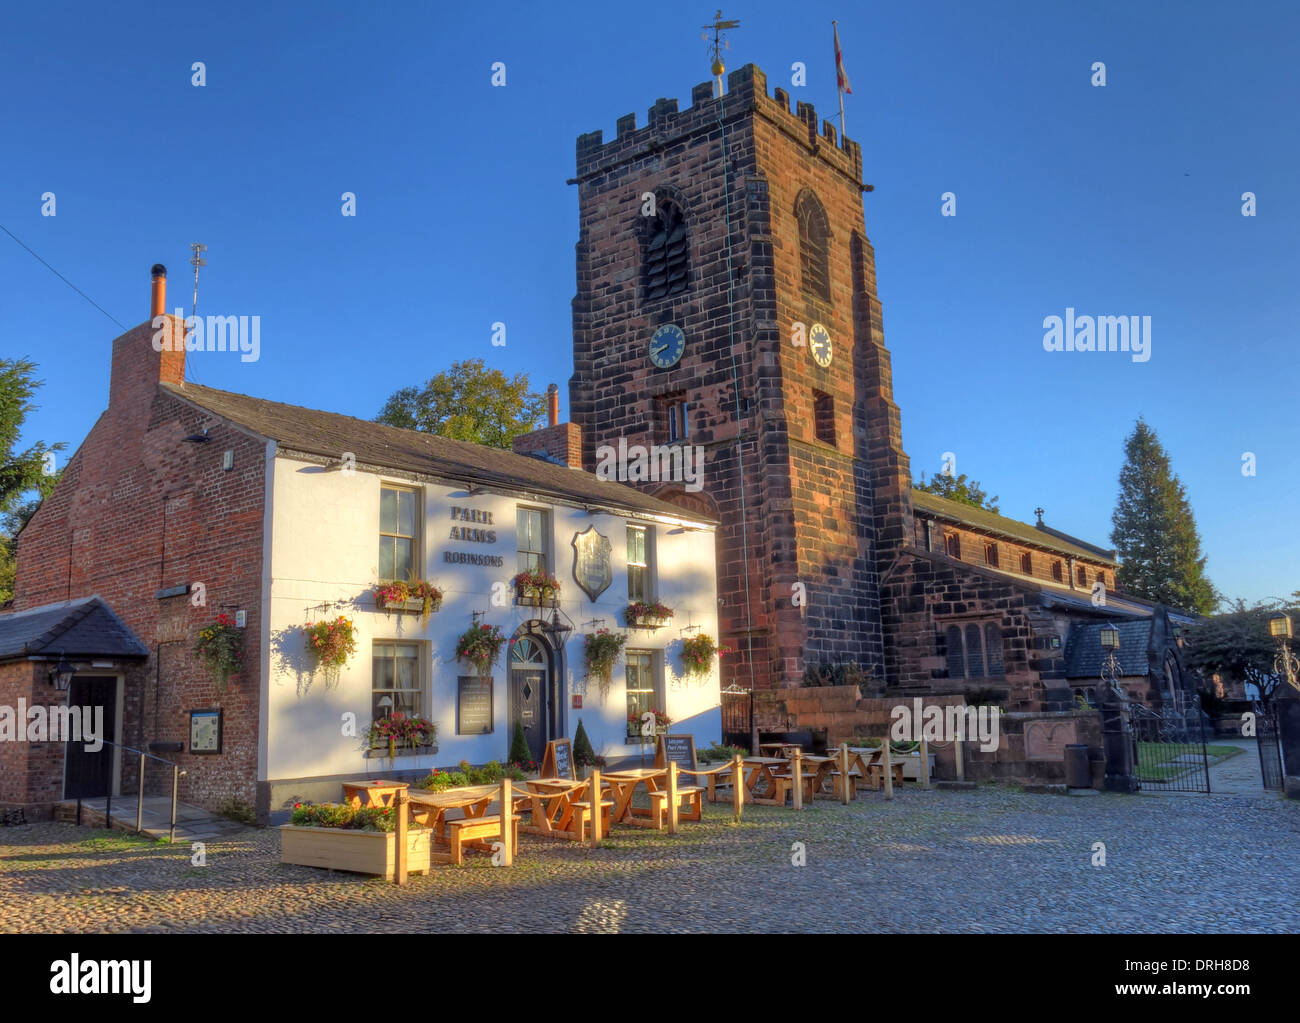 Parr Arms Pub Grappenhall Village Warrington Cheshire North West England UK - Stock Image